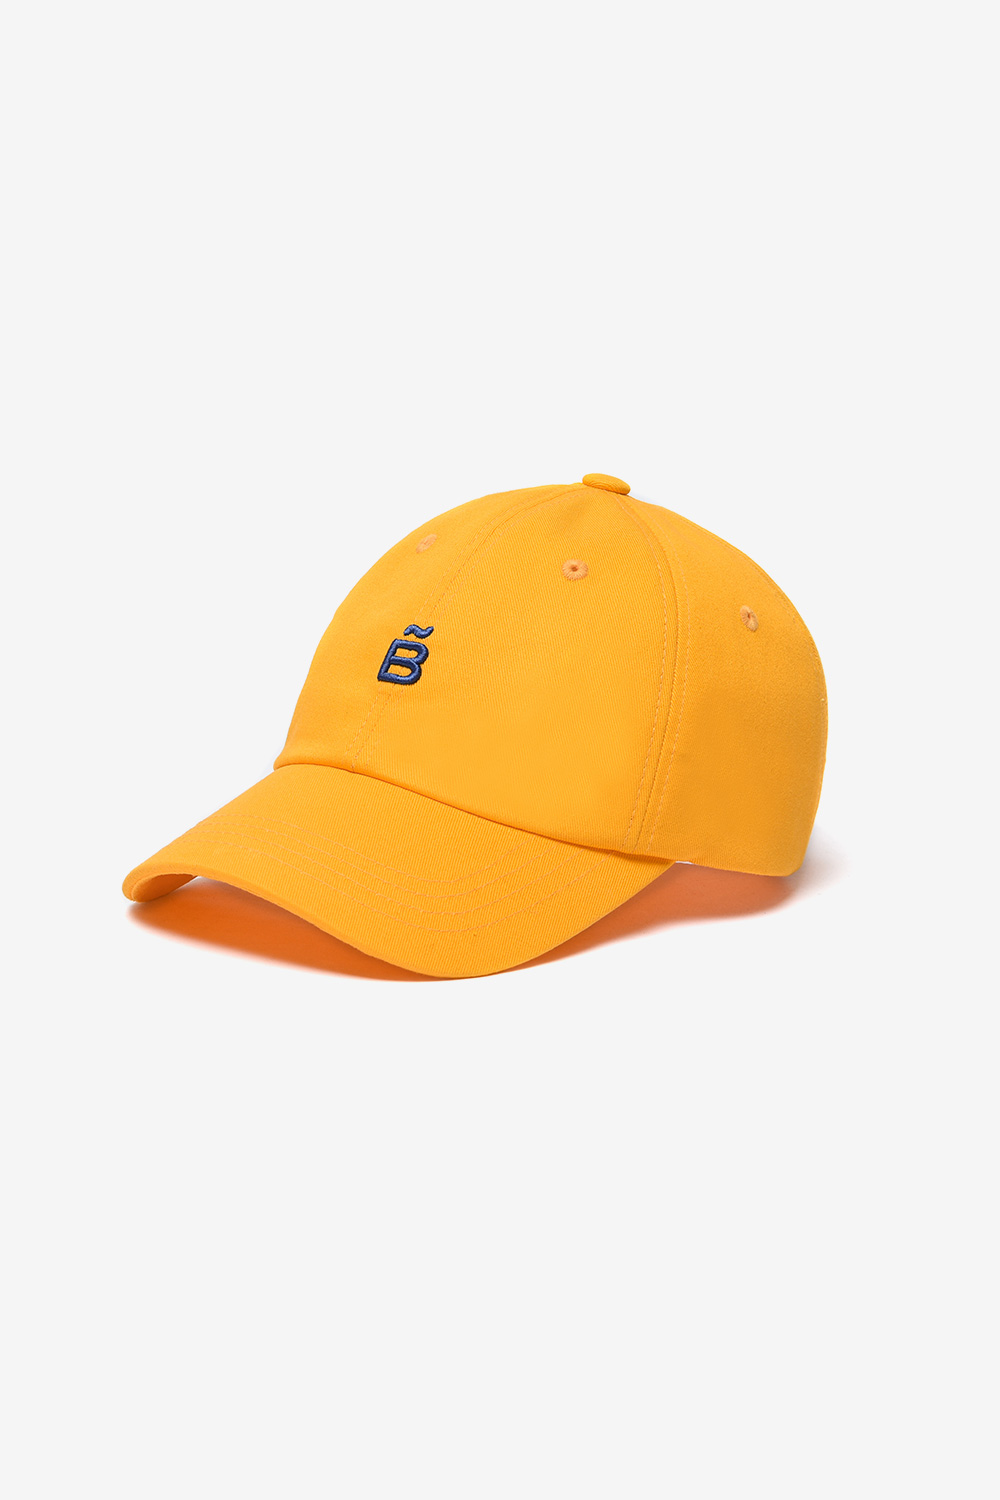 Slow B Basic Ball Cap_Yellow BS0SCP501YL00F